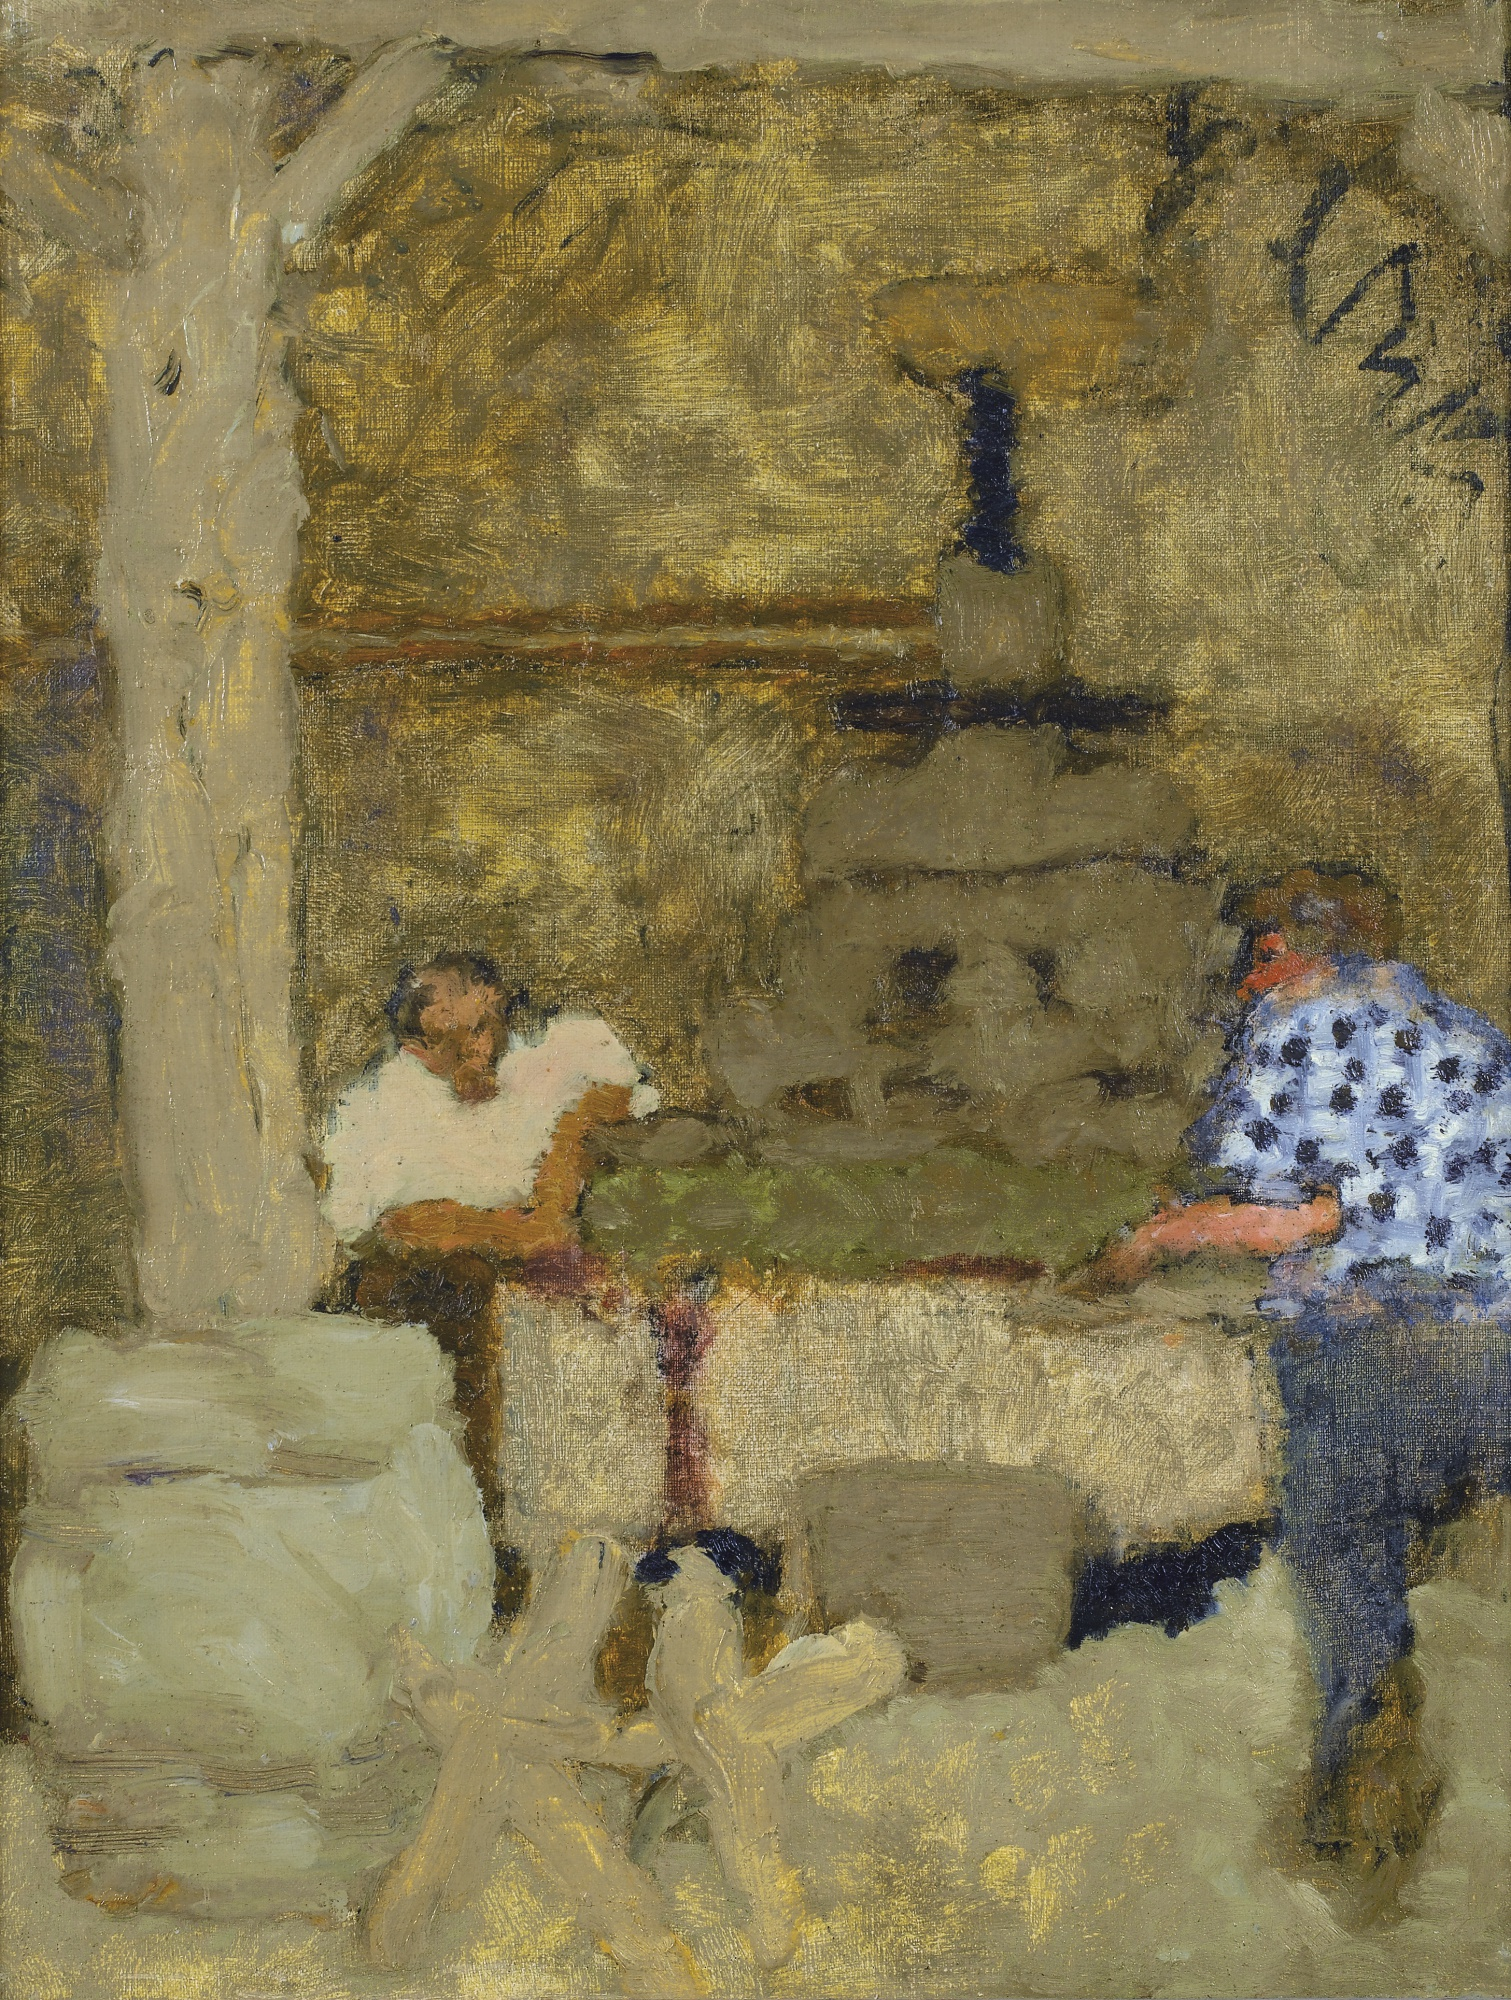 Pierre Bonnard-Le Pressoir Au Grand-Lemps-1893